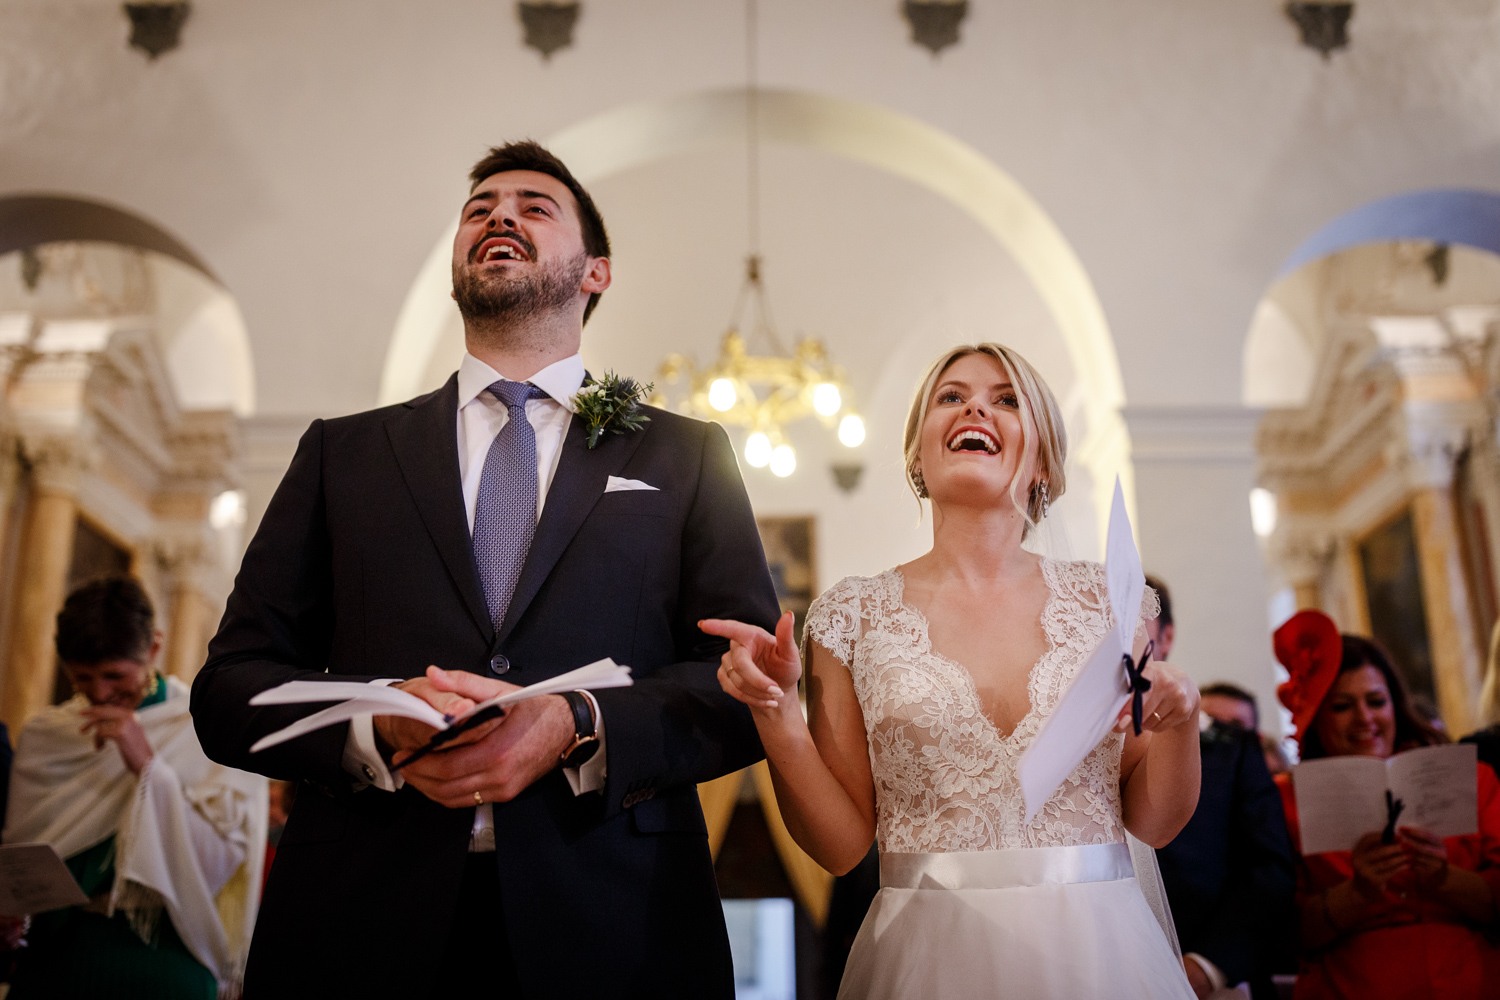 The bride and groom at the church of Certosa in Tuscany